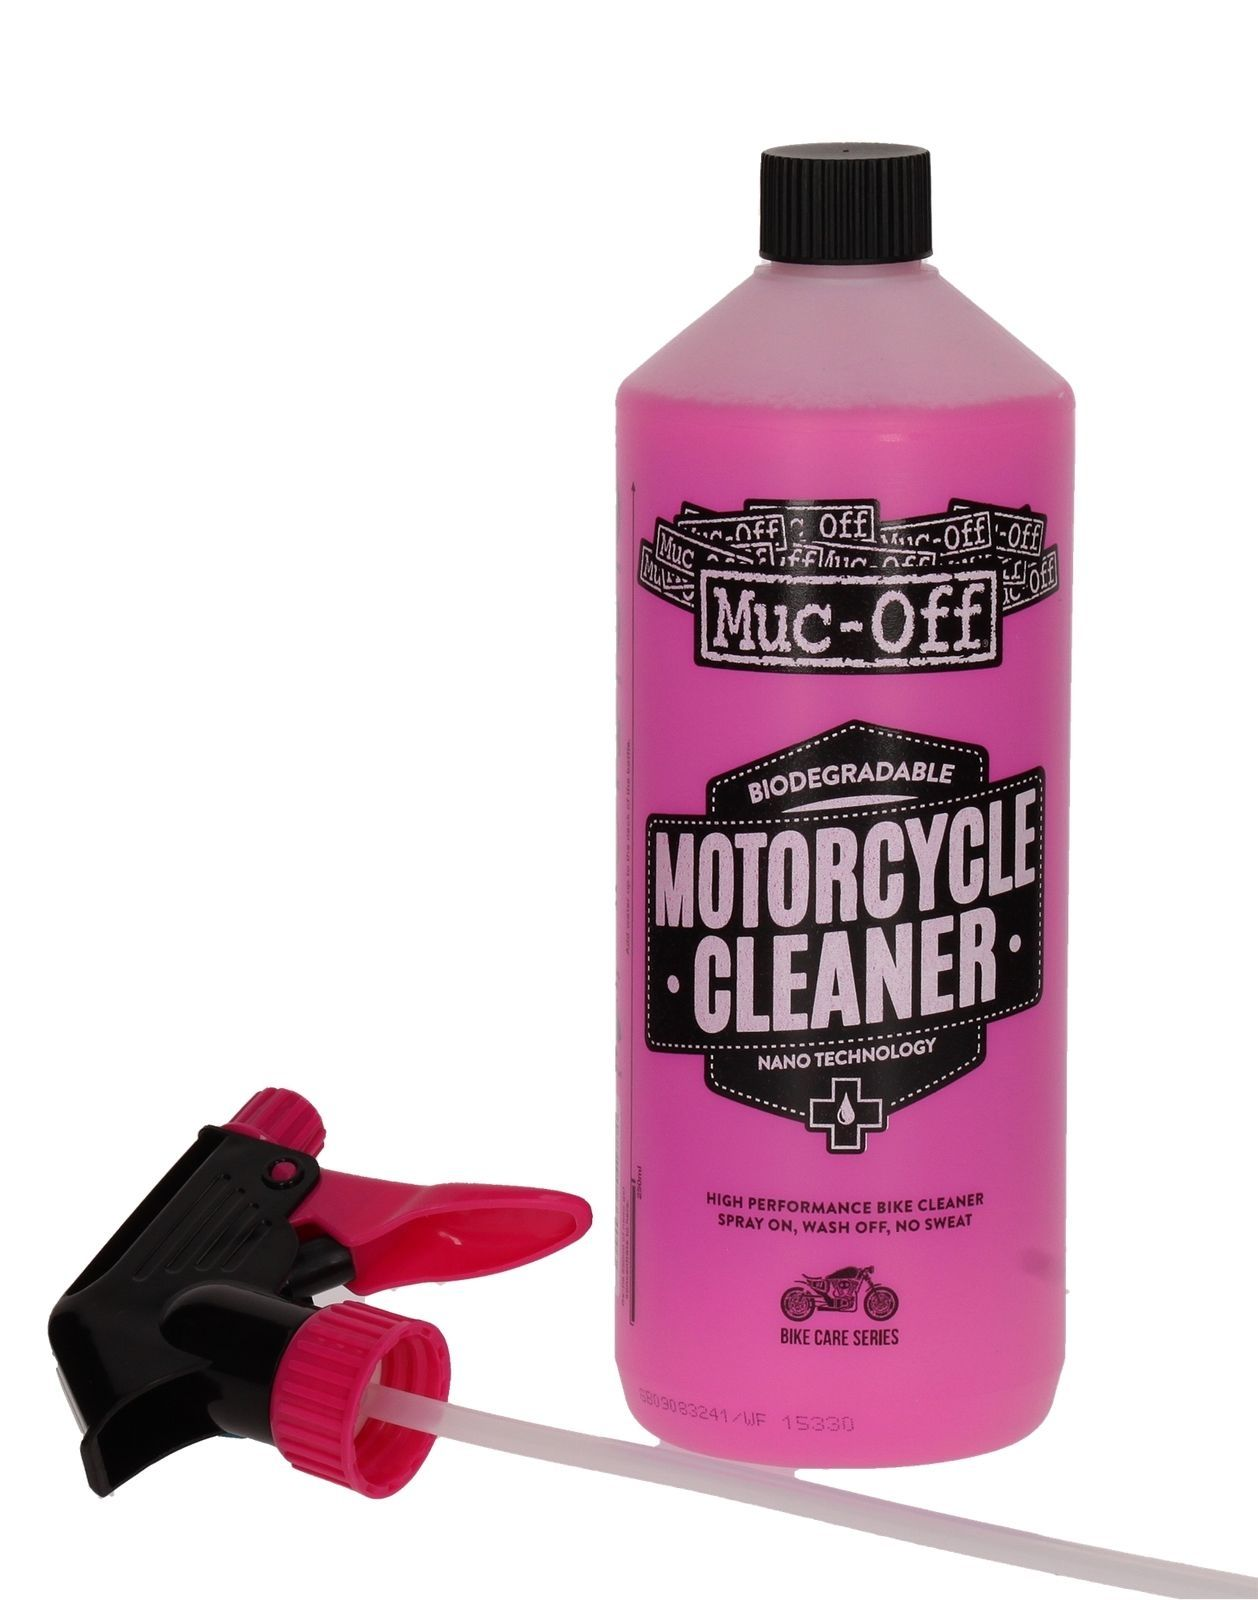 Muc-Off Super Motorcycle Cleaner 1 liter